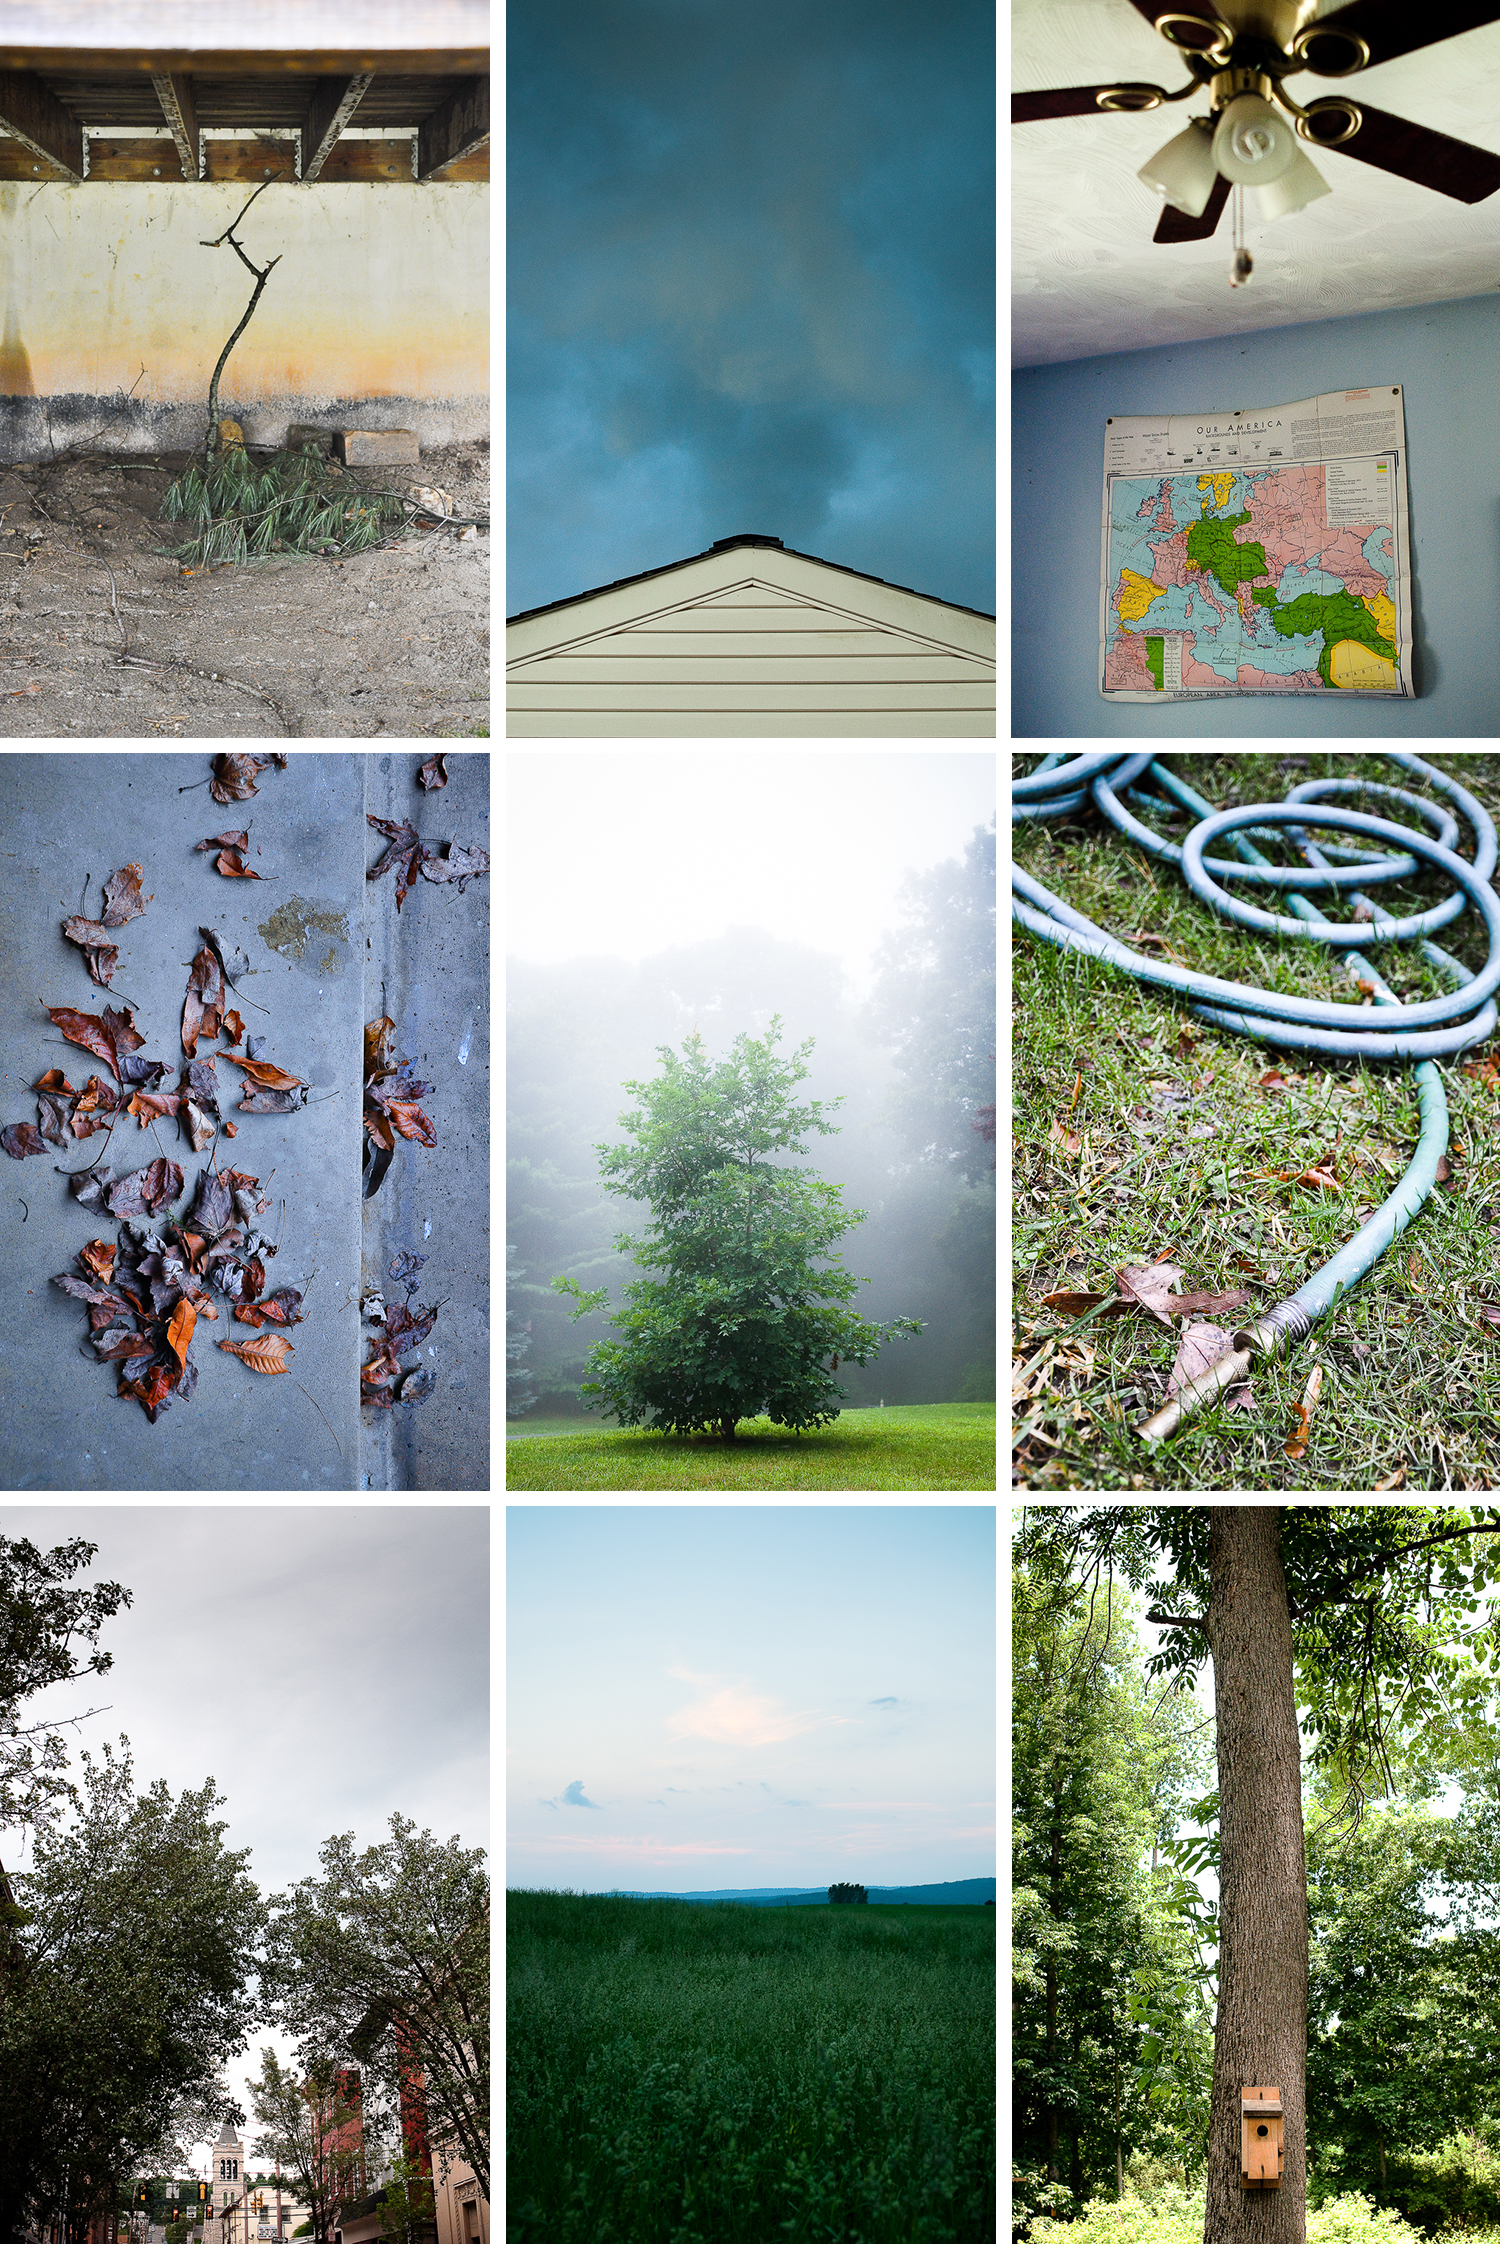 """Daily Life, Pennsylvania"" -   (Row 1)   Under the Deck  , Franklin Township;   Roof  , Franklin Township;   Our America,   Huntingdon, PA; (Row 2)   Scattered,   Franklin Township;   Joe's Oak in Fog  , Franklin Township;   Hose at the Side of the House  , Franklin Township; (Row 3)   Steeple  , Huntingdon;   Field  , Williamsburg;   Birdhouse  , Huntingdon"